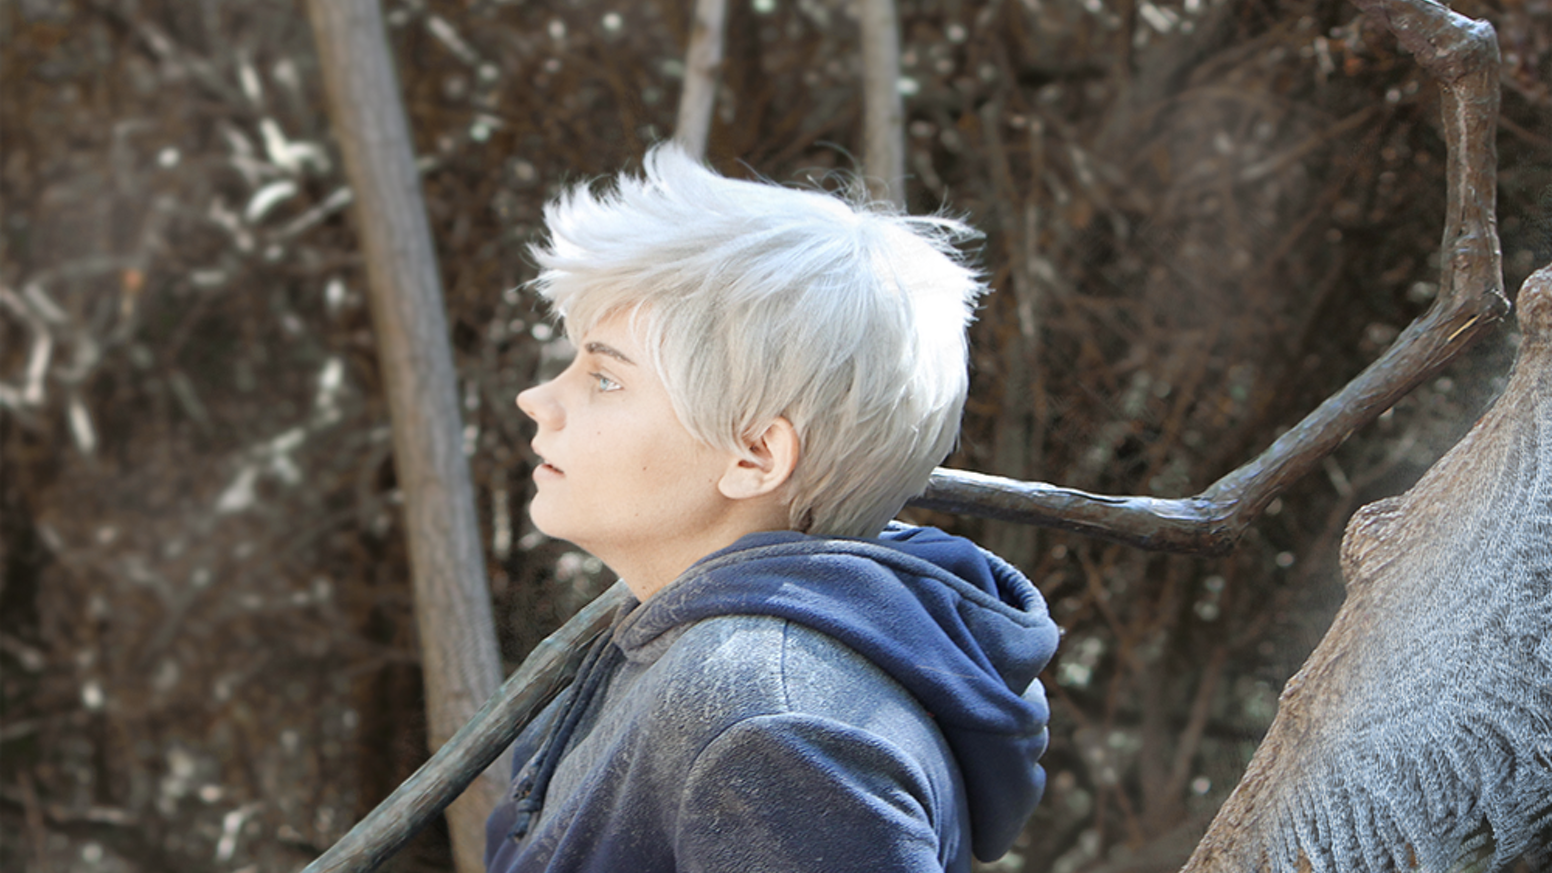 Jack Frost Cosplay Operation Snowballs And Fun Times By Jet Kickstarter